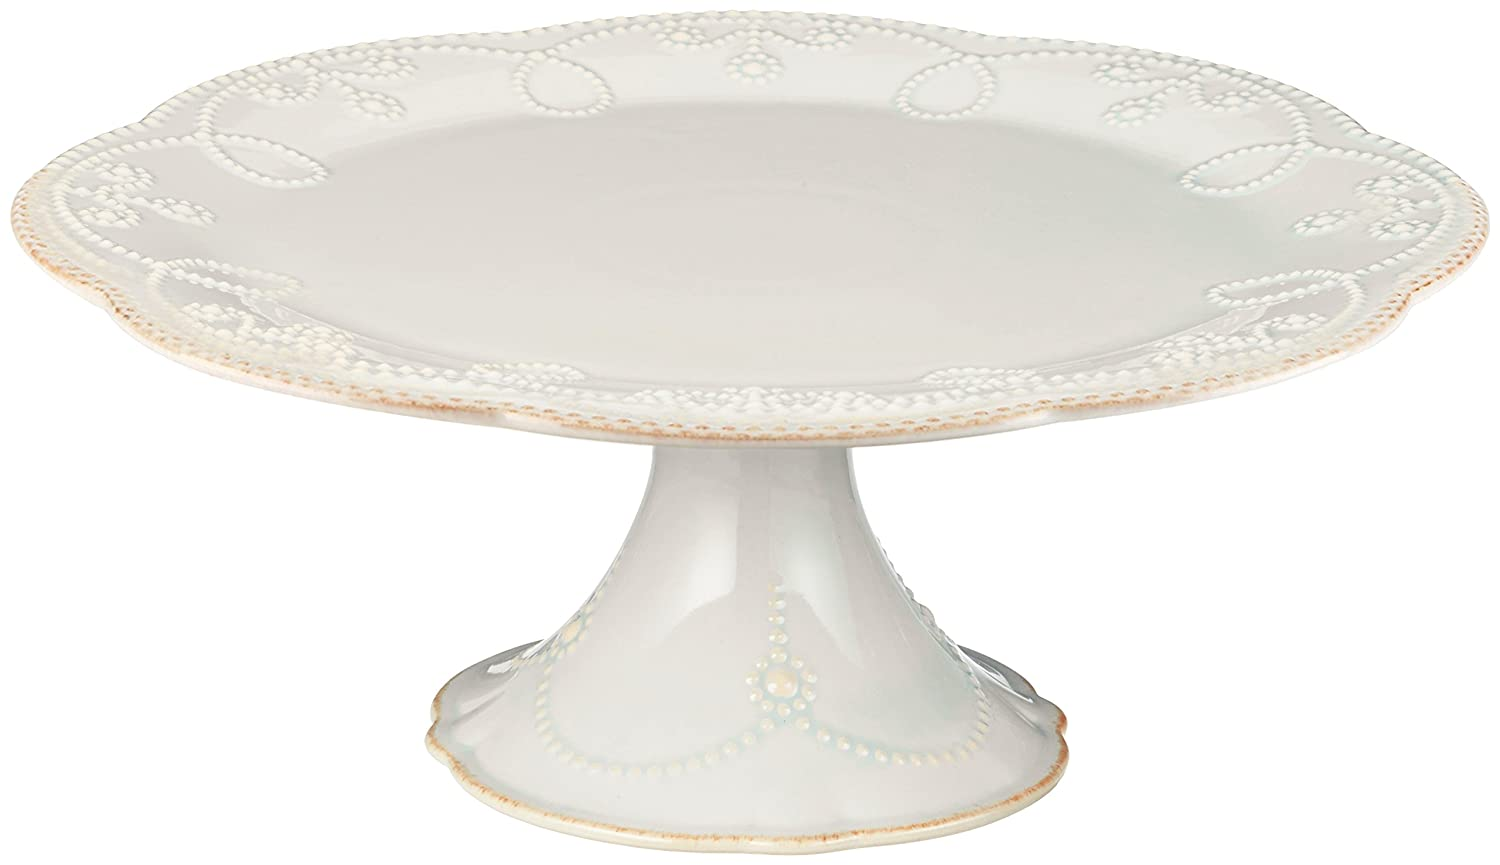 Lenox French Perle Pedestal Cake Plate, Medium, White 824745